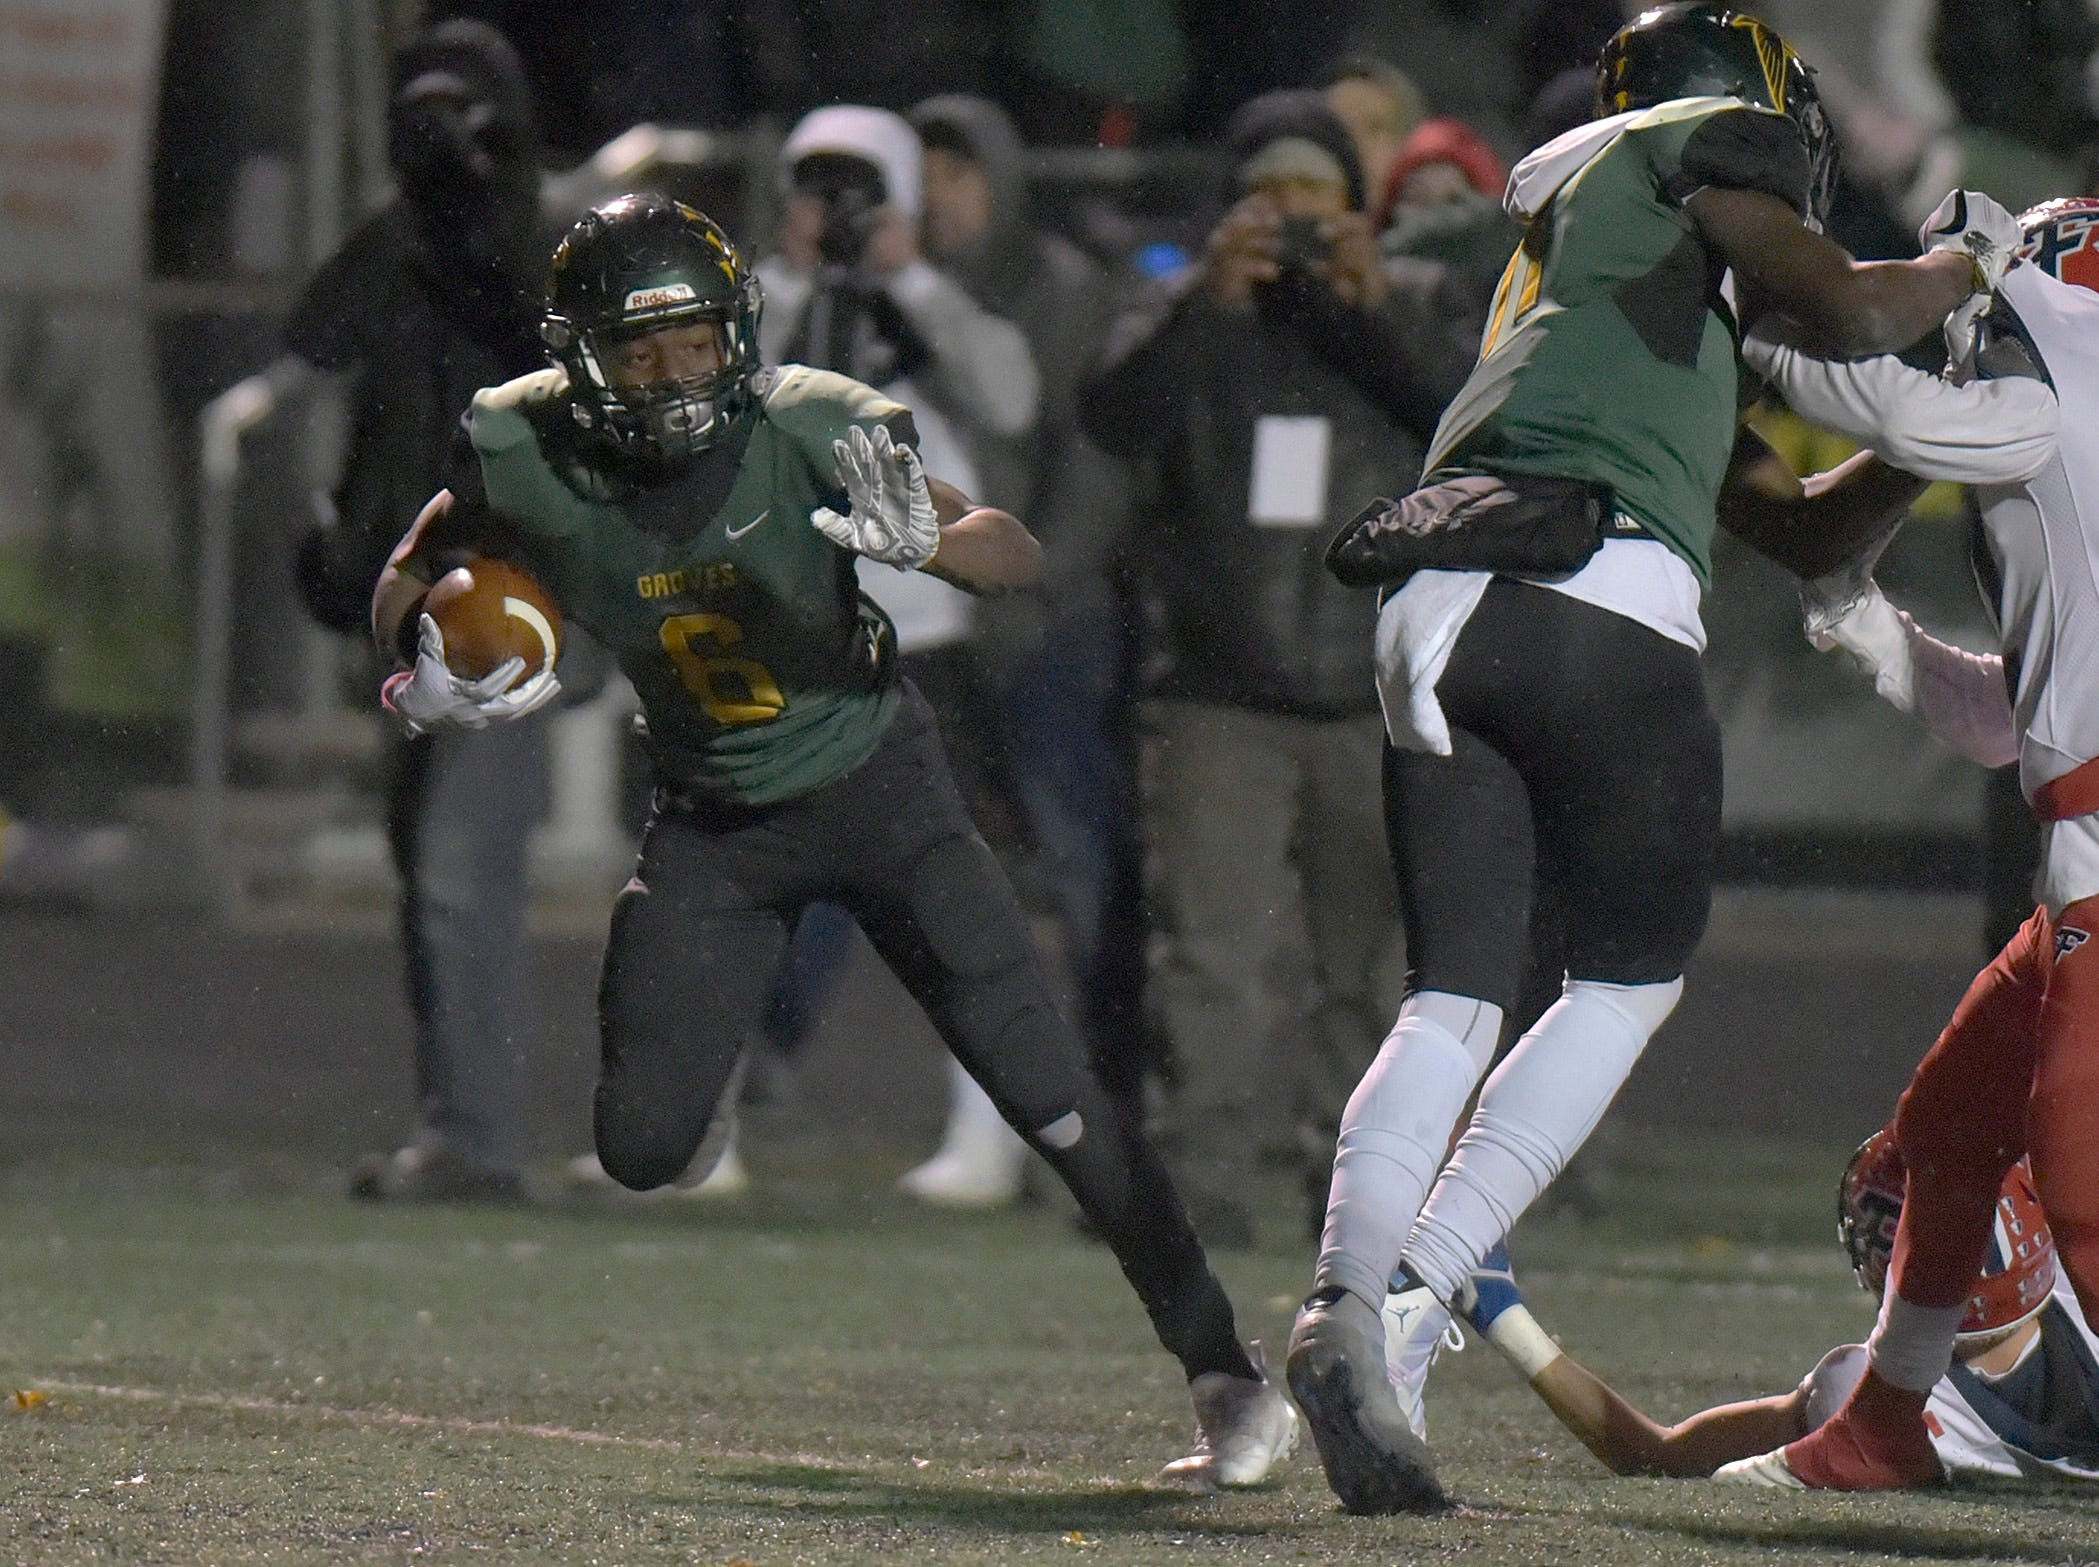 Birmingham Groves RB/FS Damonte McCurdy (6) looks over his shoulder on his way to a Groves touchdown.